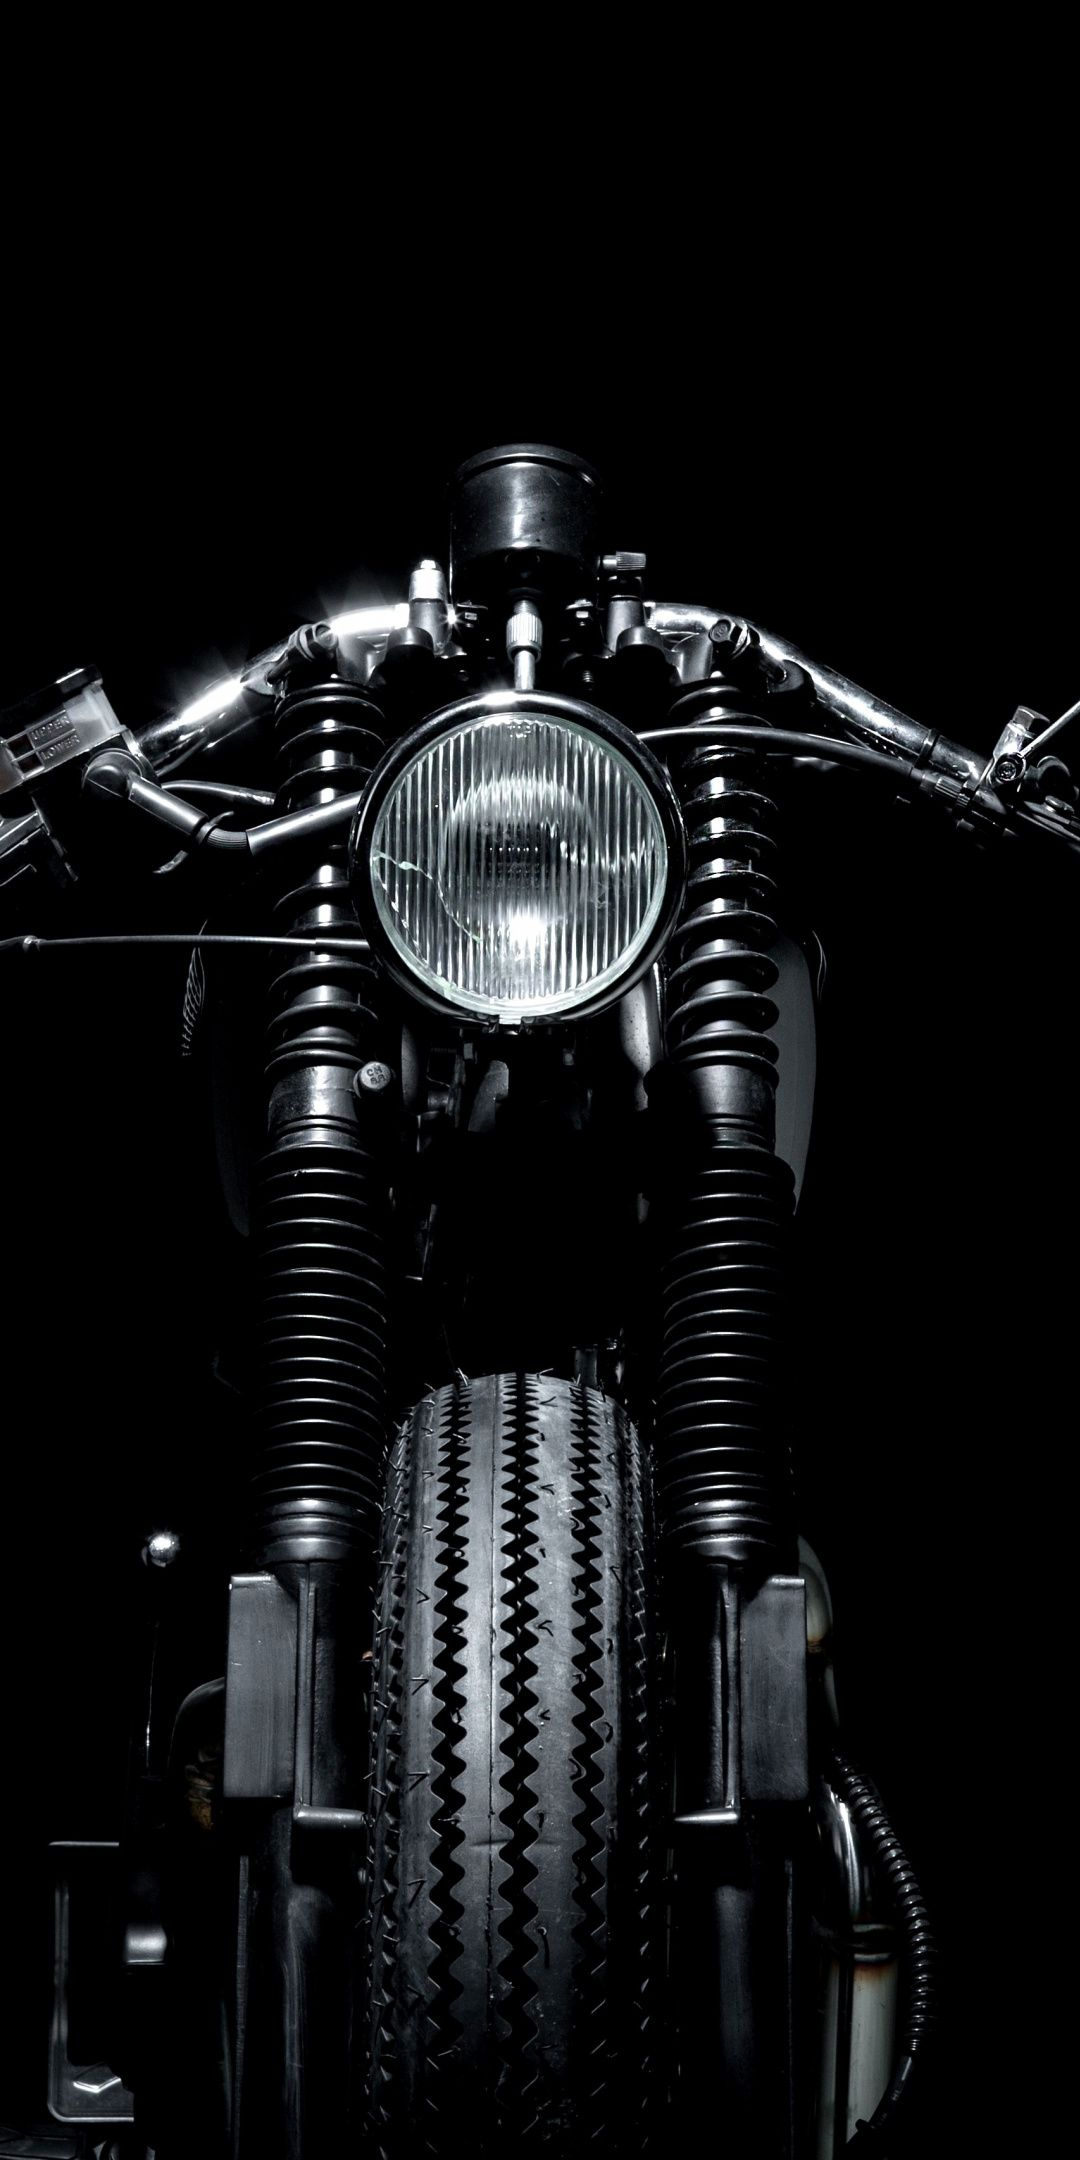 Motorcycle Portrait 1080x2160 Wallpaper Motorcycle Wallpaper